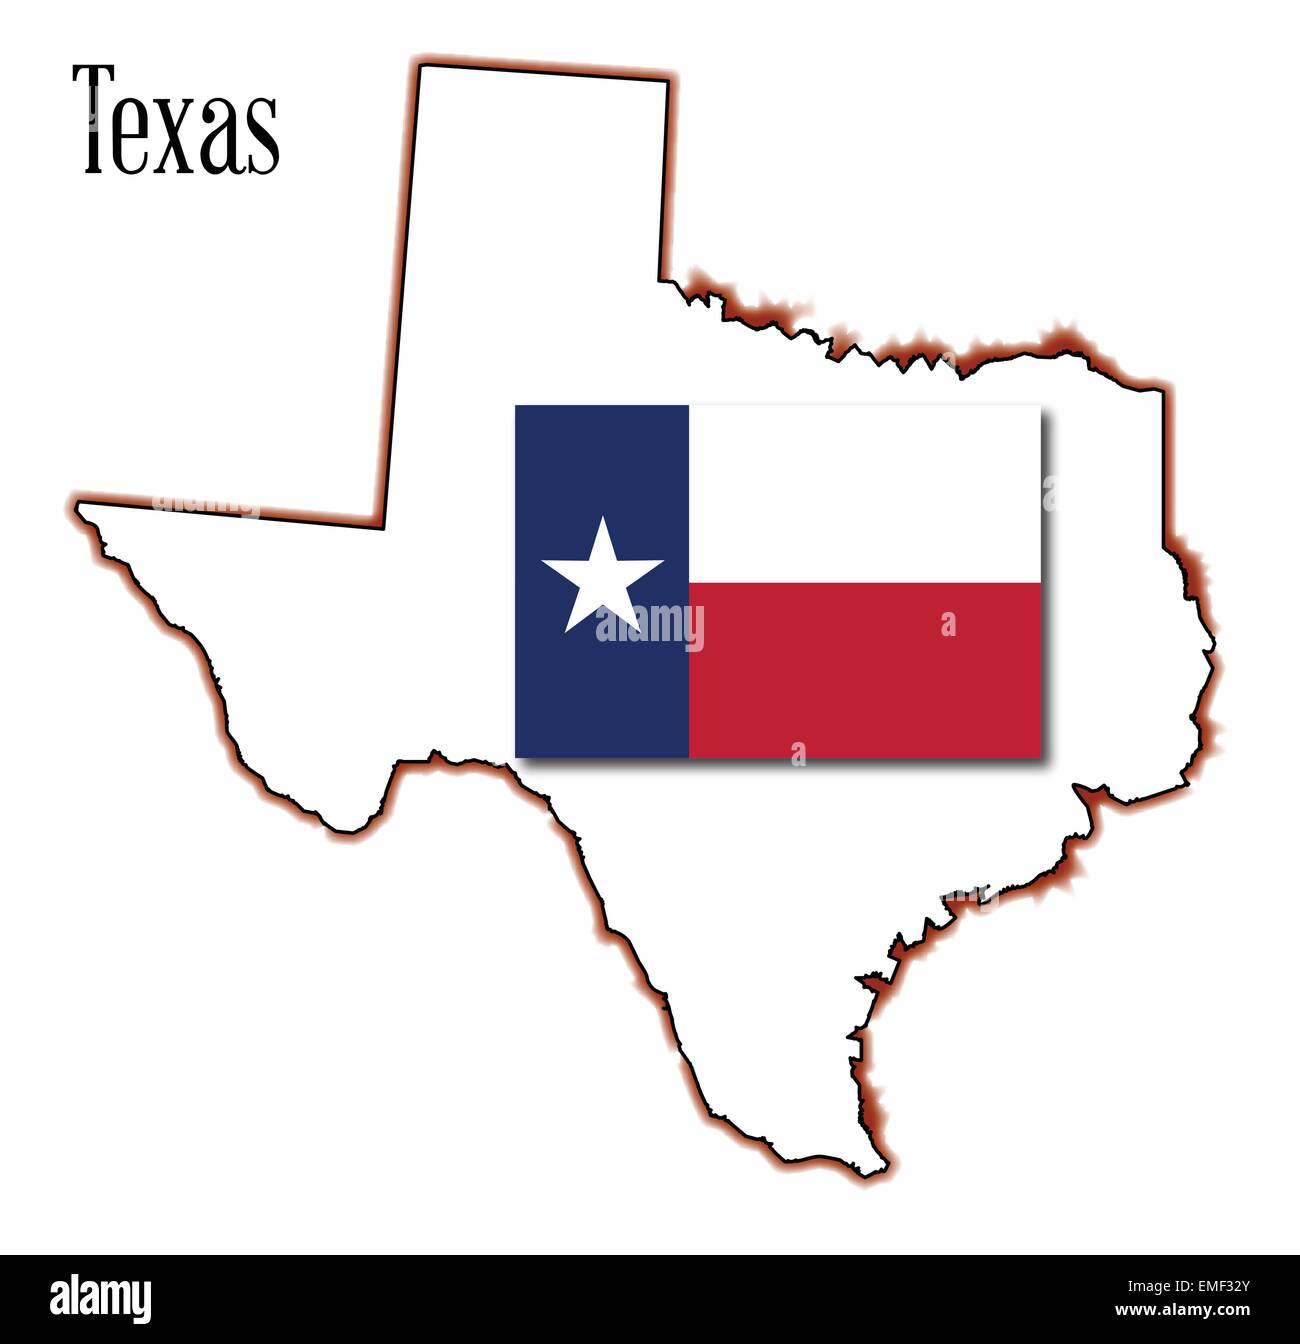 Charmant Texas State Flagge Färbung Seite Ideen - Entry Level Resume ...